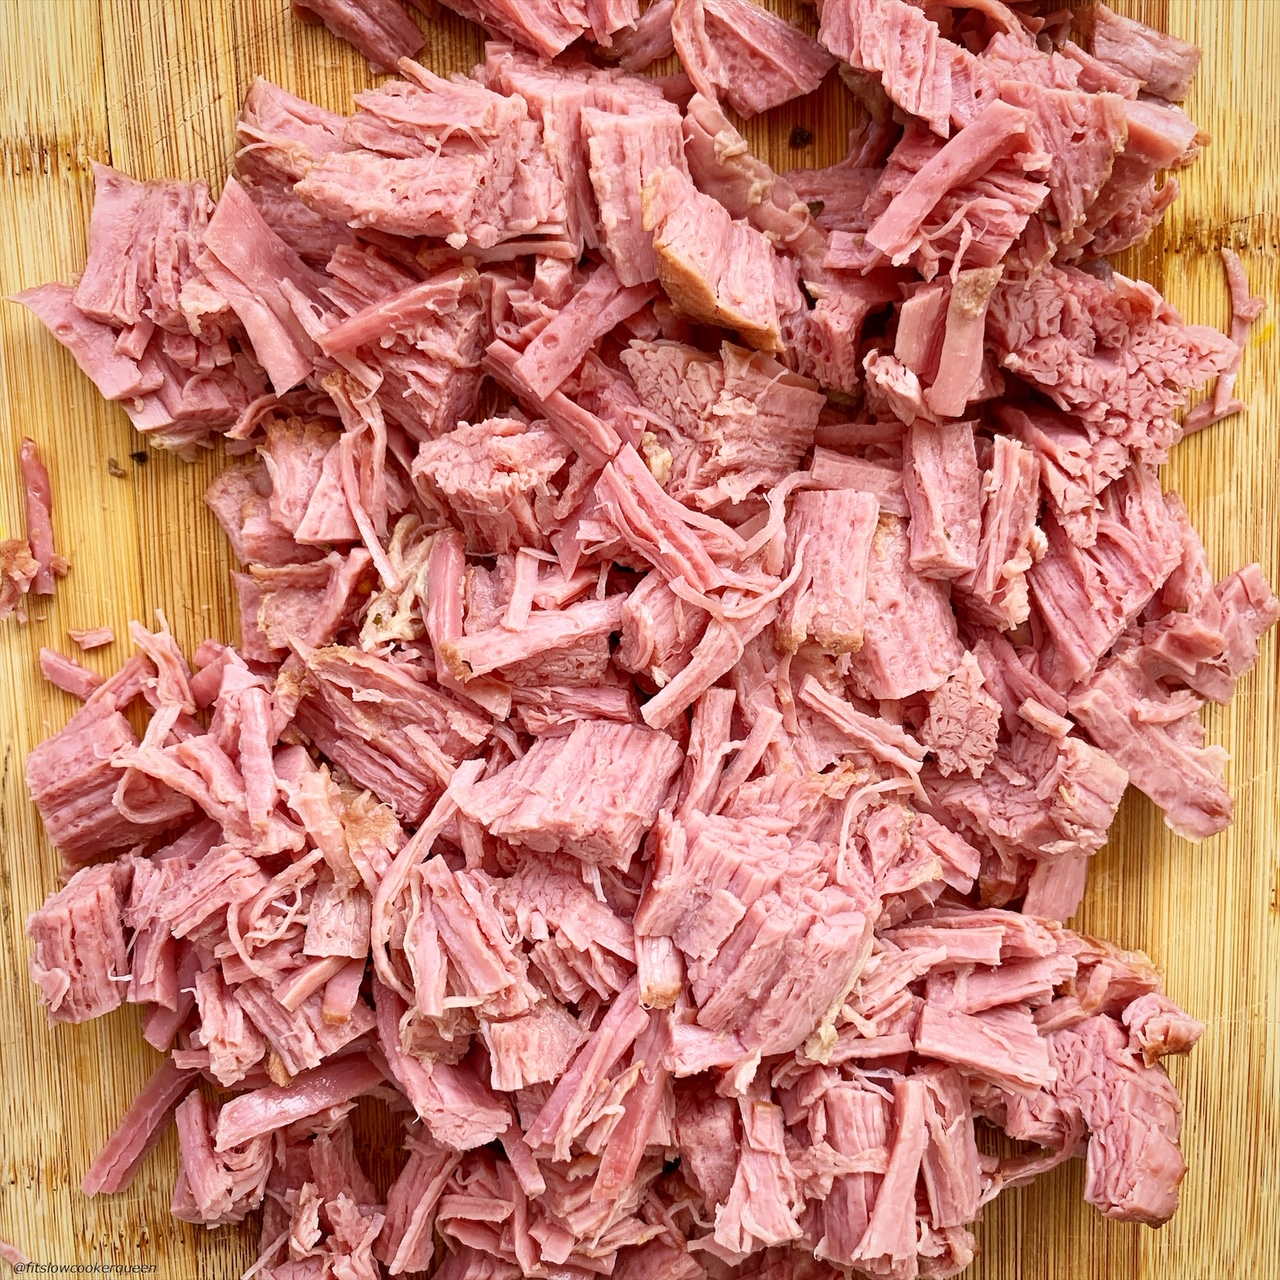 shredded corned beef